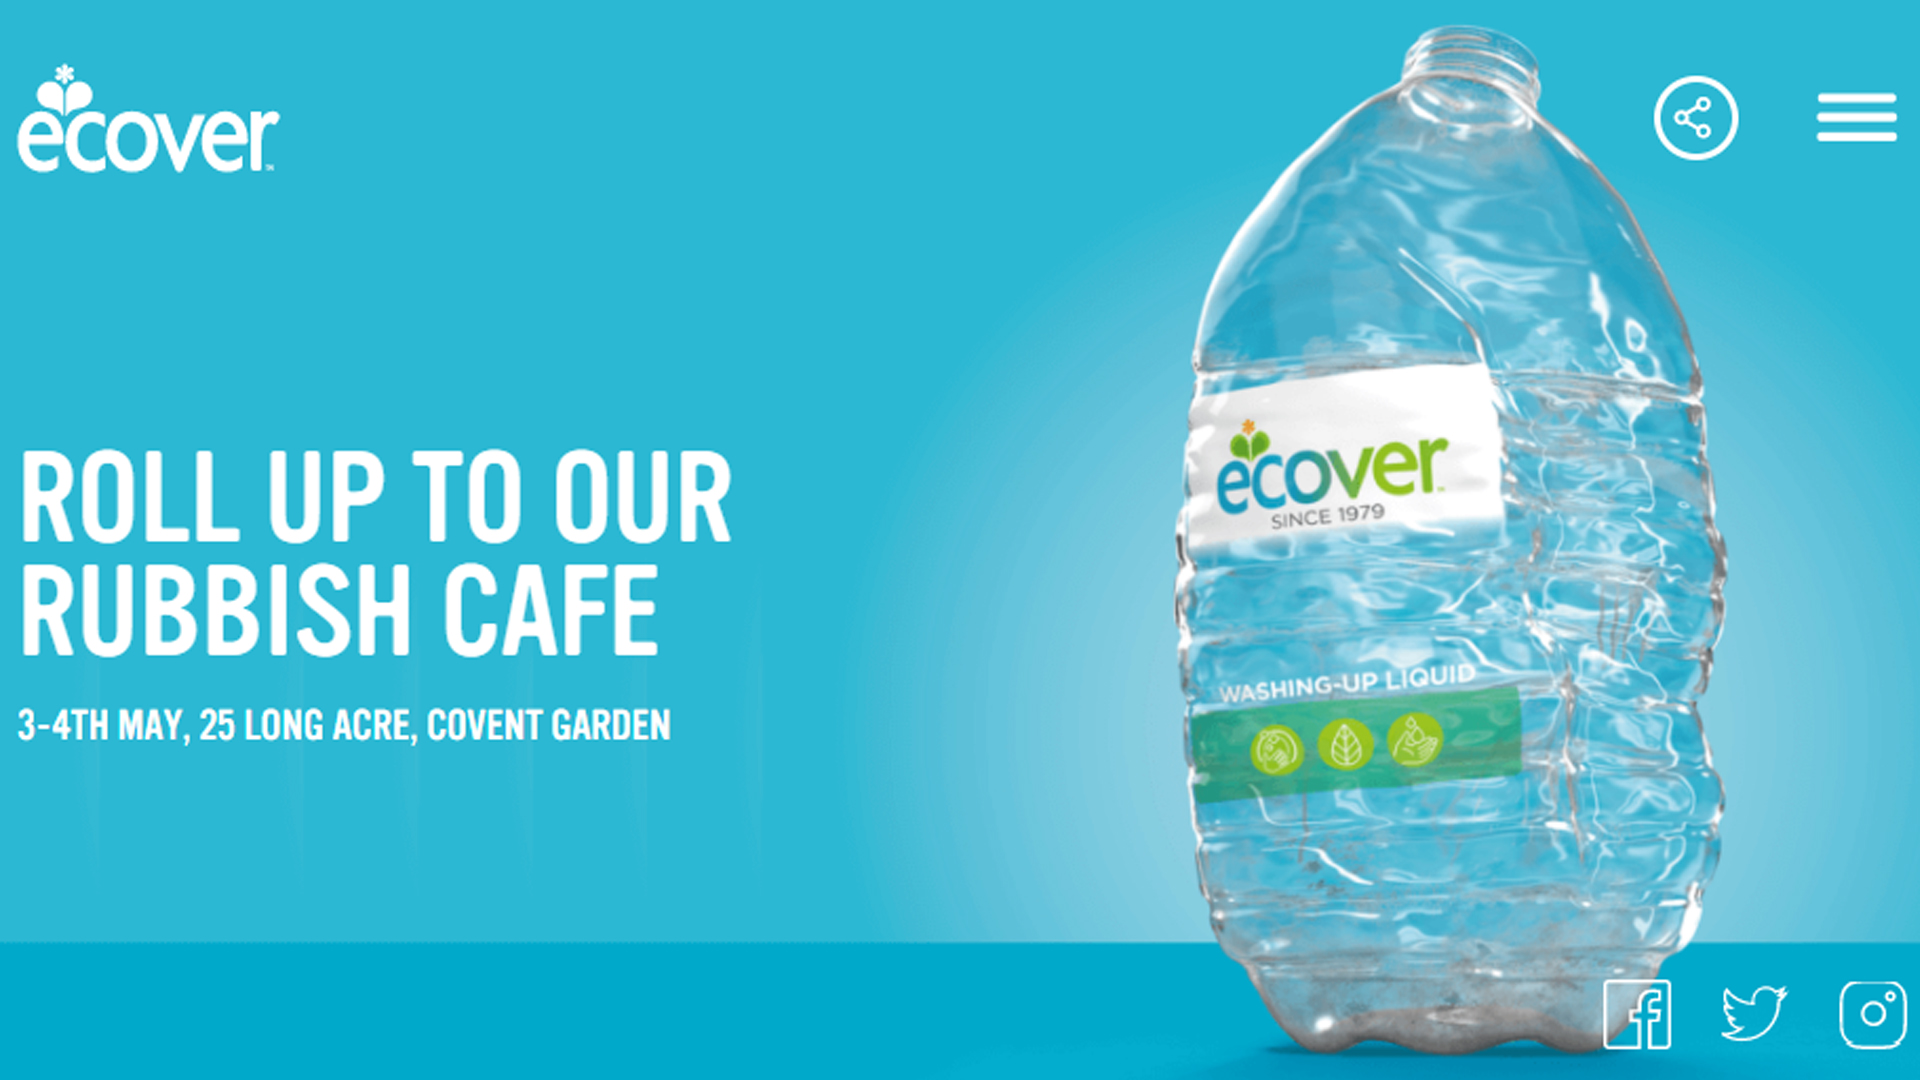 Ecover rubbish cafe